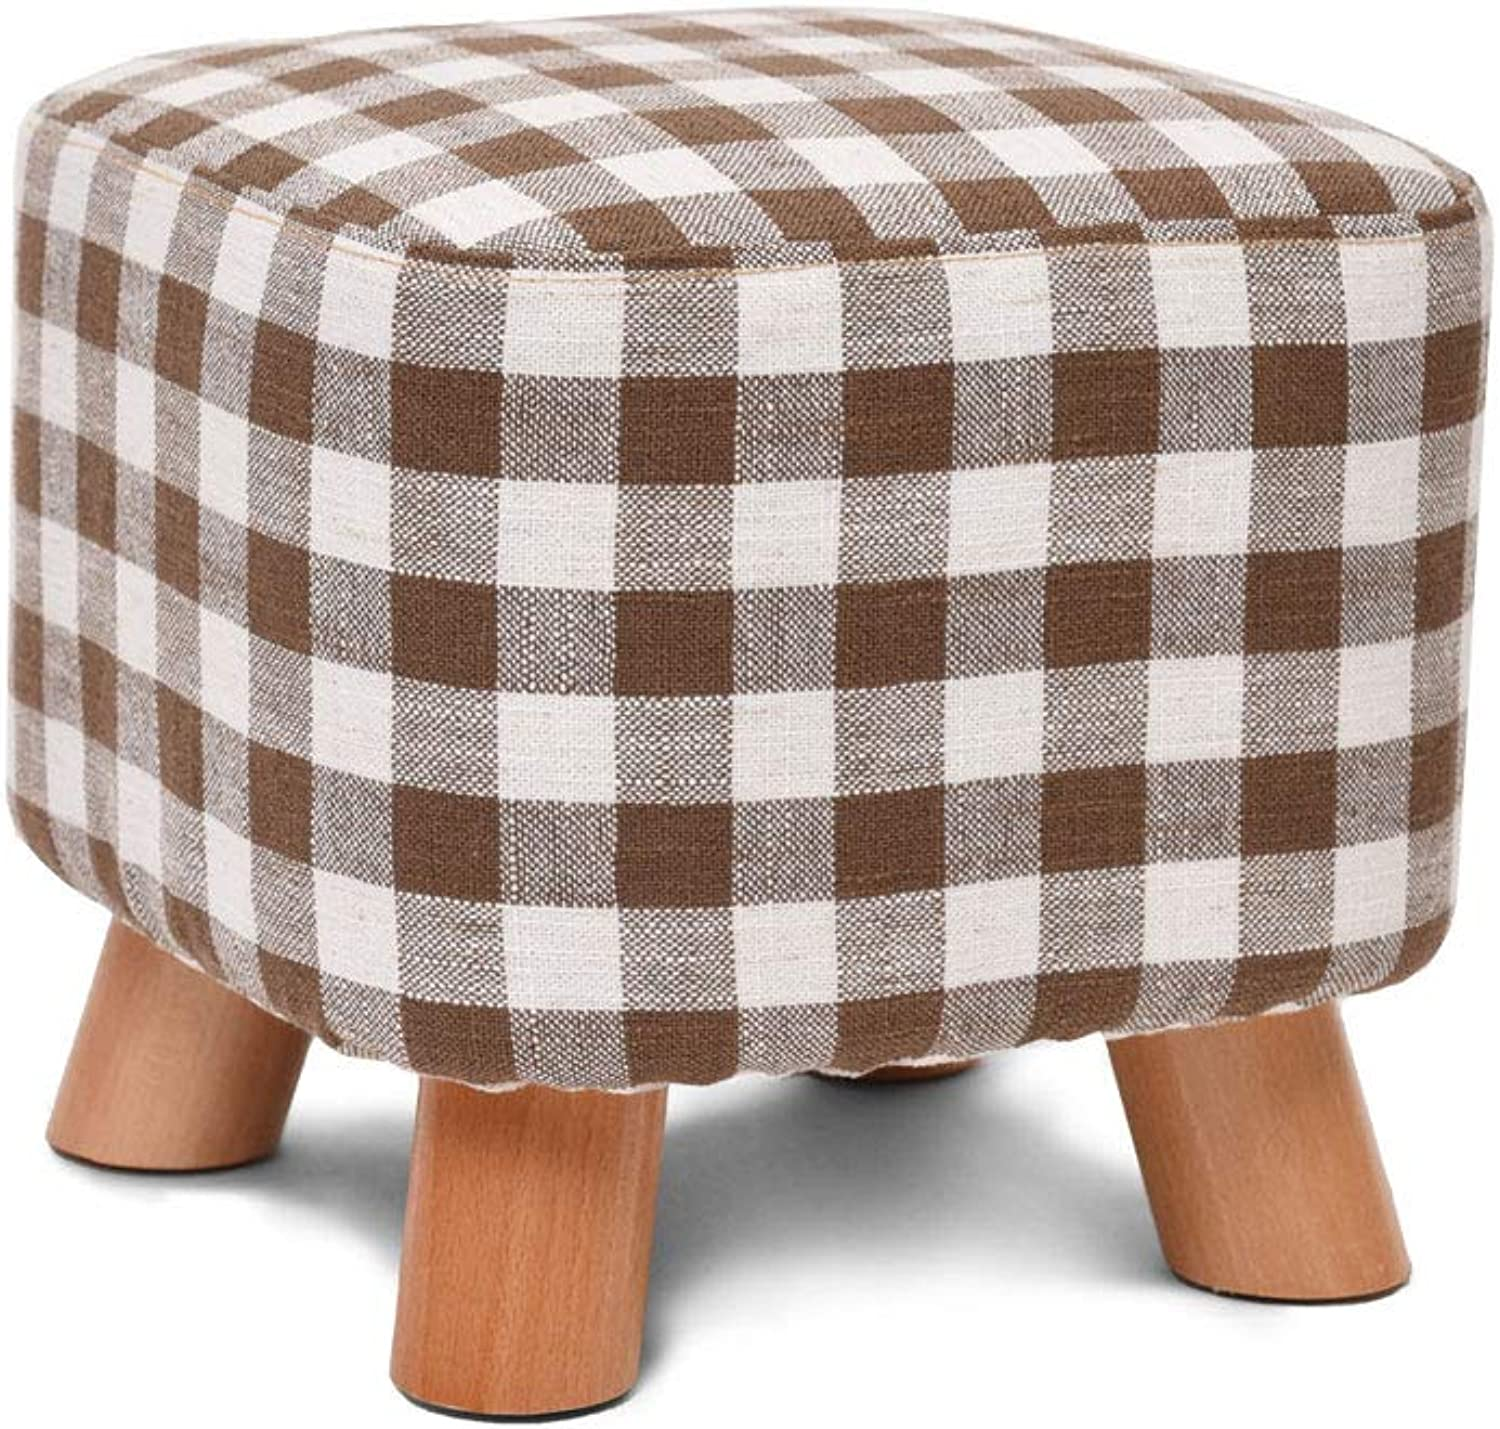 ZSLLO Solid Wood shoes Bench Creative Square Stool Fabric Stool Stool Sofa Stool Coffee Table Bench Home Stool (color   G)